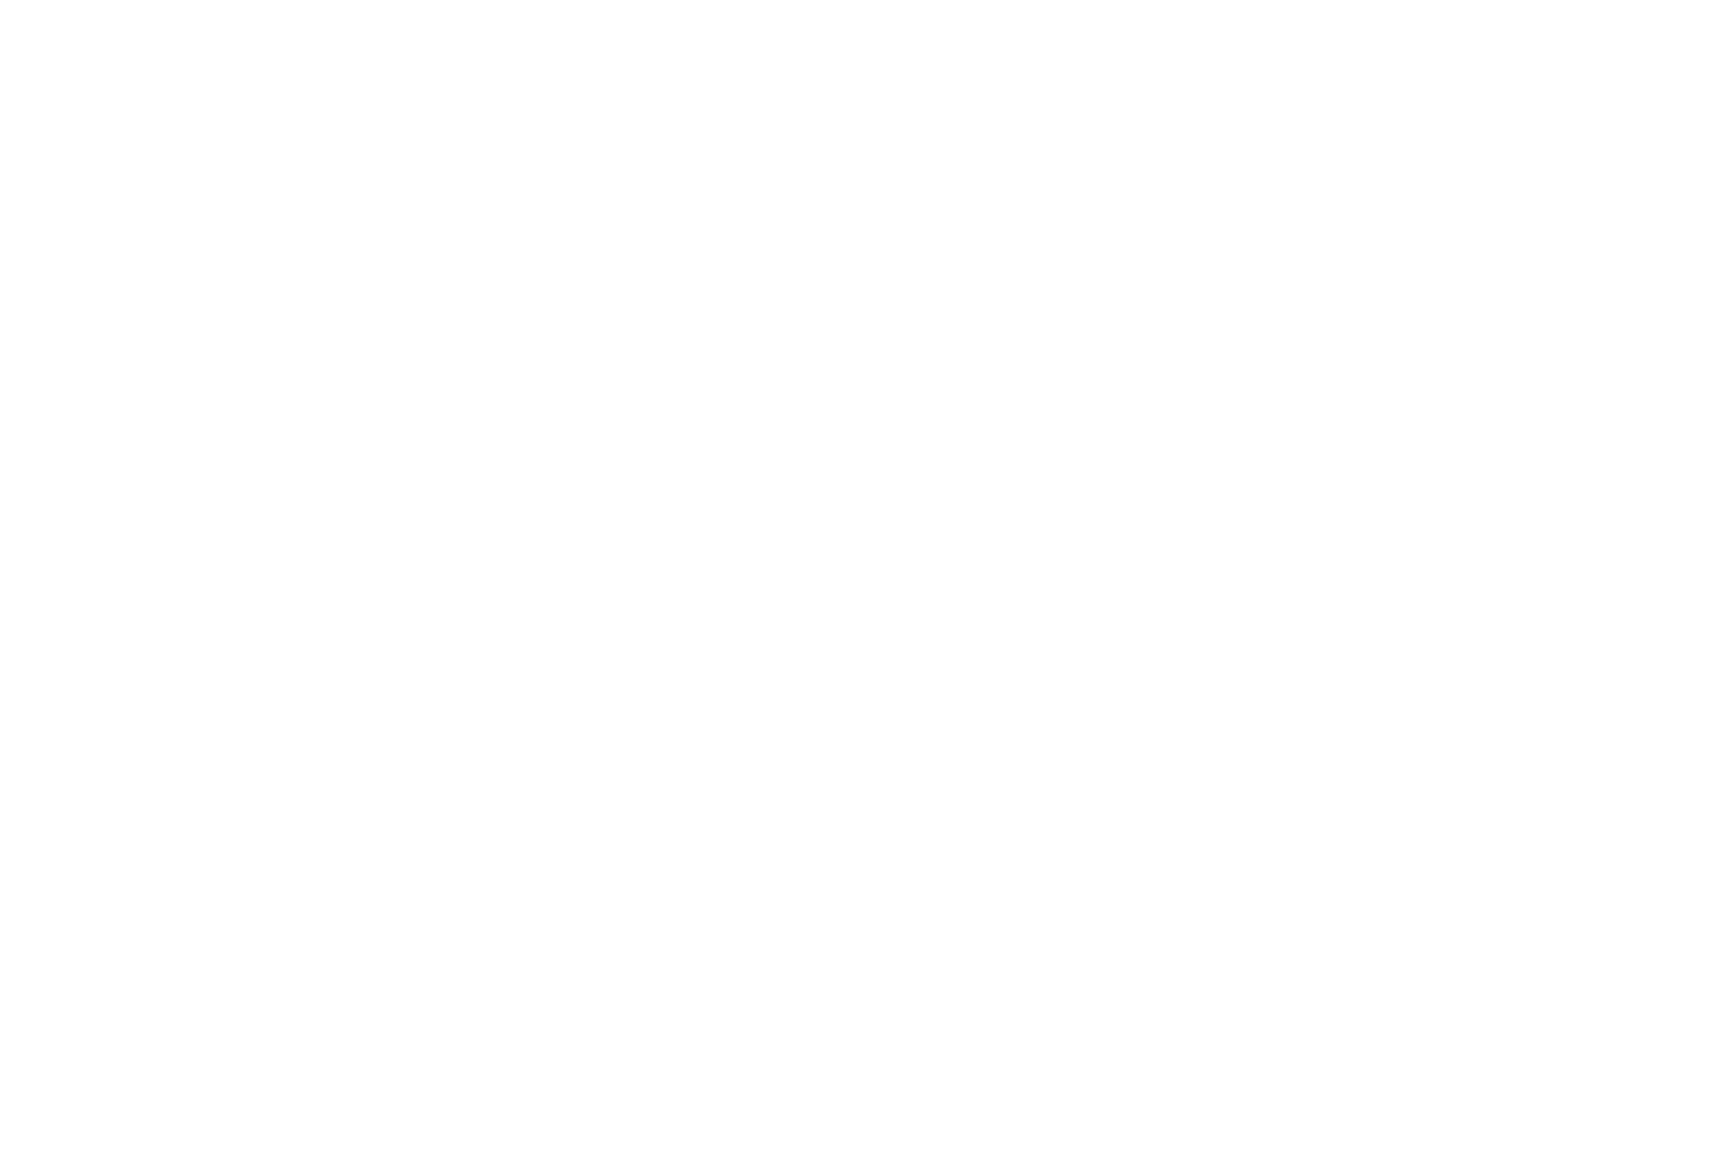 FINALIST BEST DOCUMENTARY - CHRISTIAN WORLDVIEW FILM FESTIVAL - 2017.png